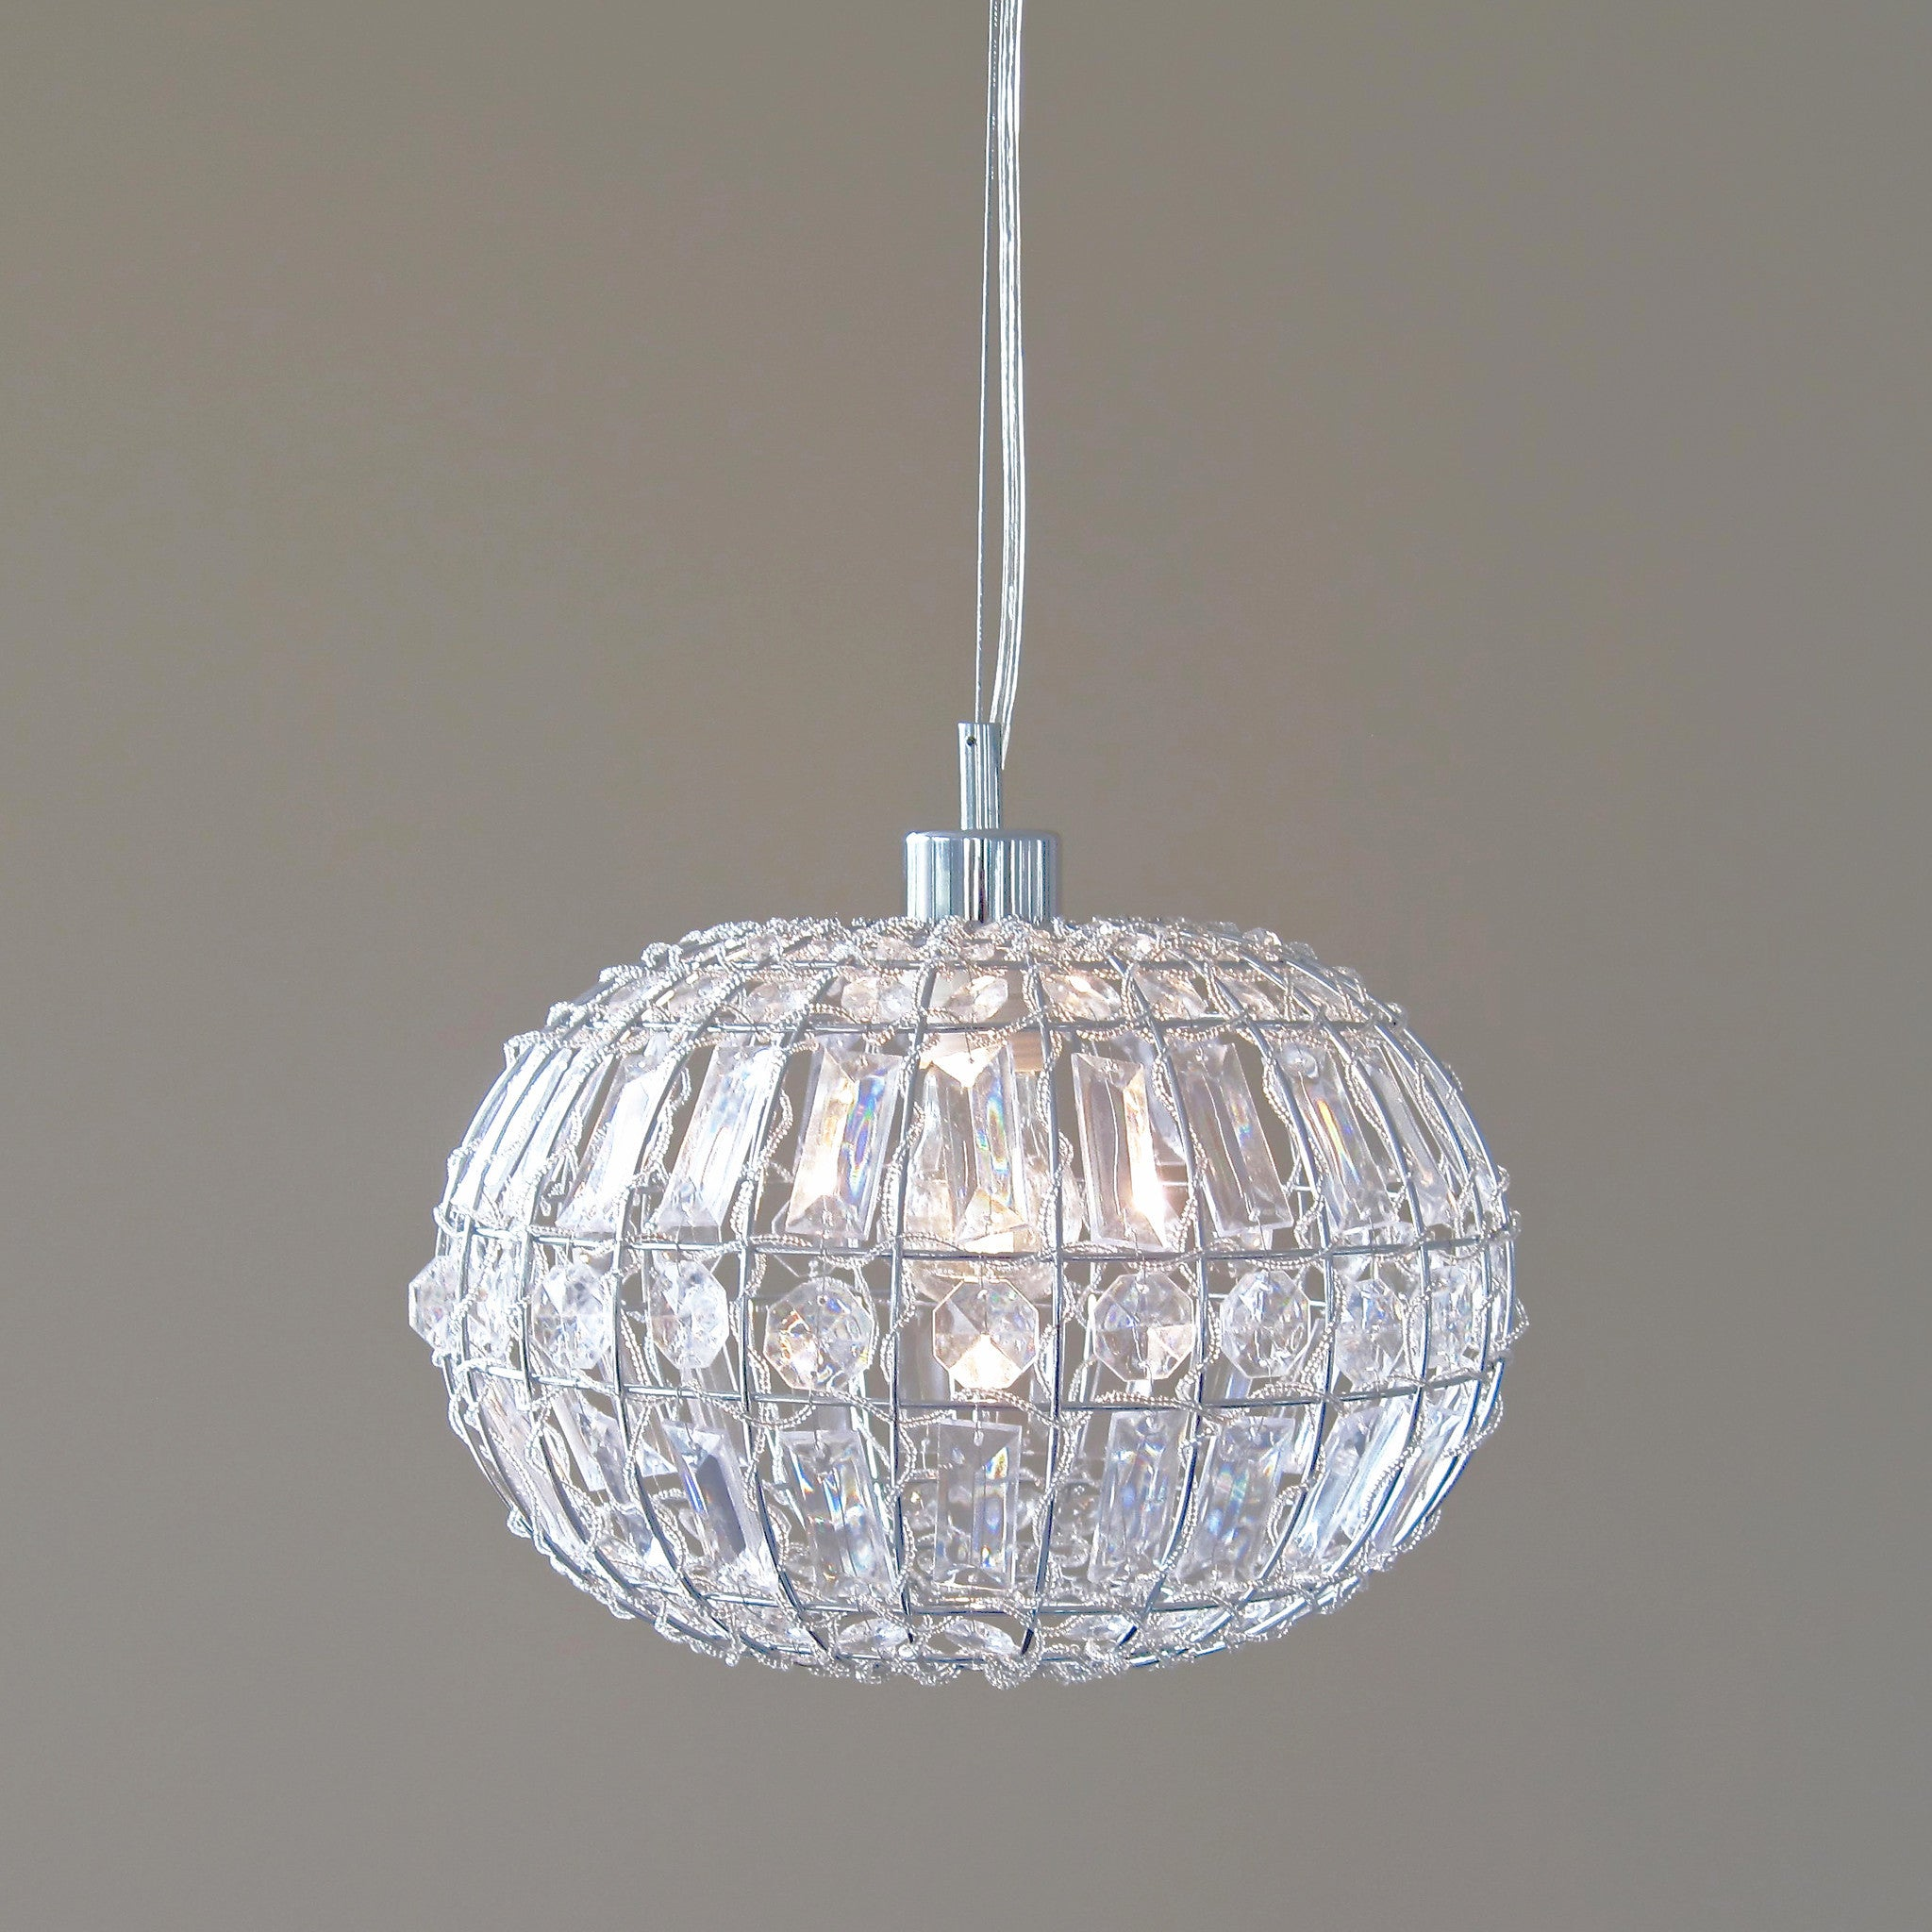 LILY PENDANT LIGHT Chic Round Crystal Ball Hanging Lamp – Ivory